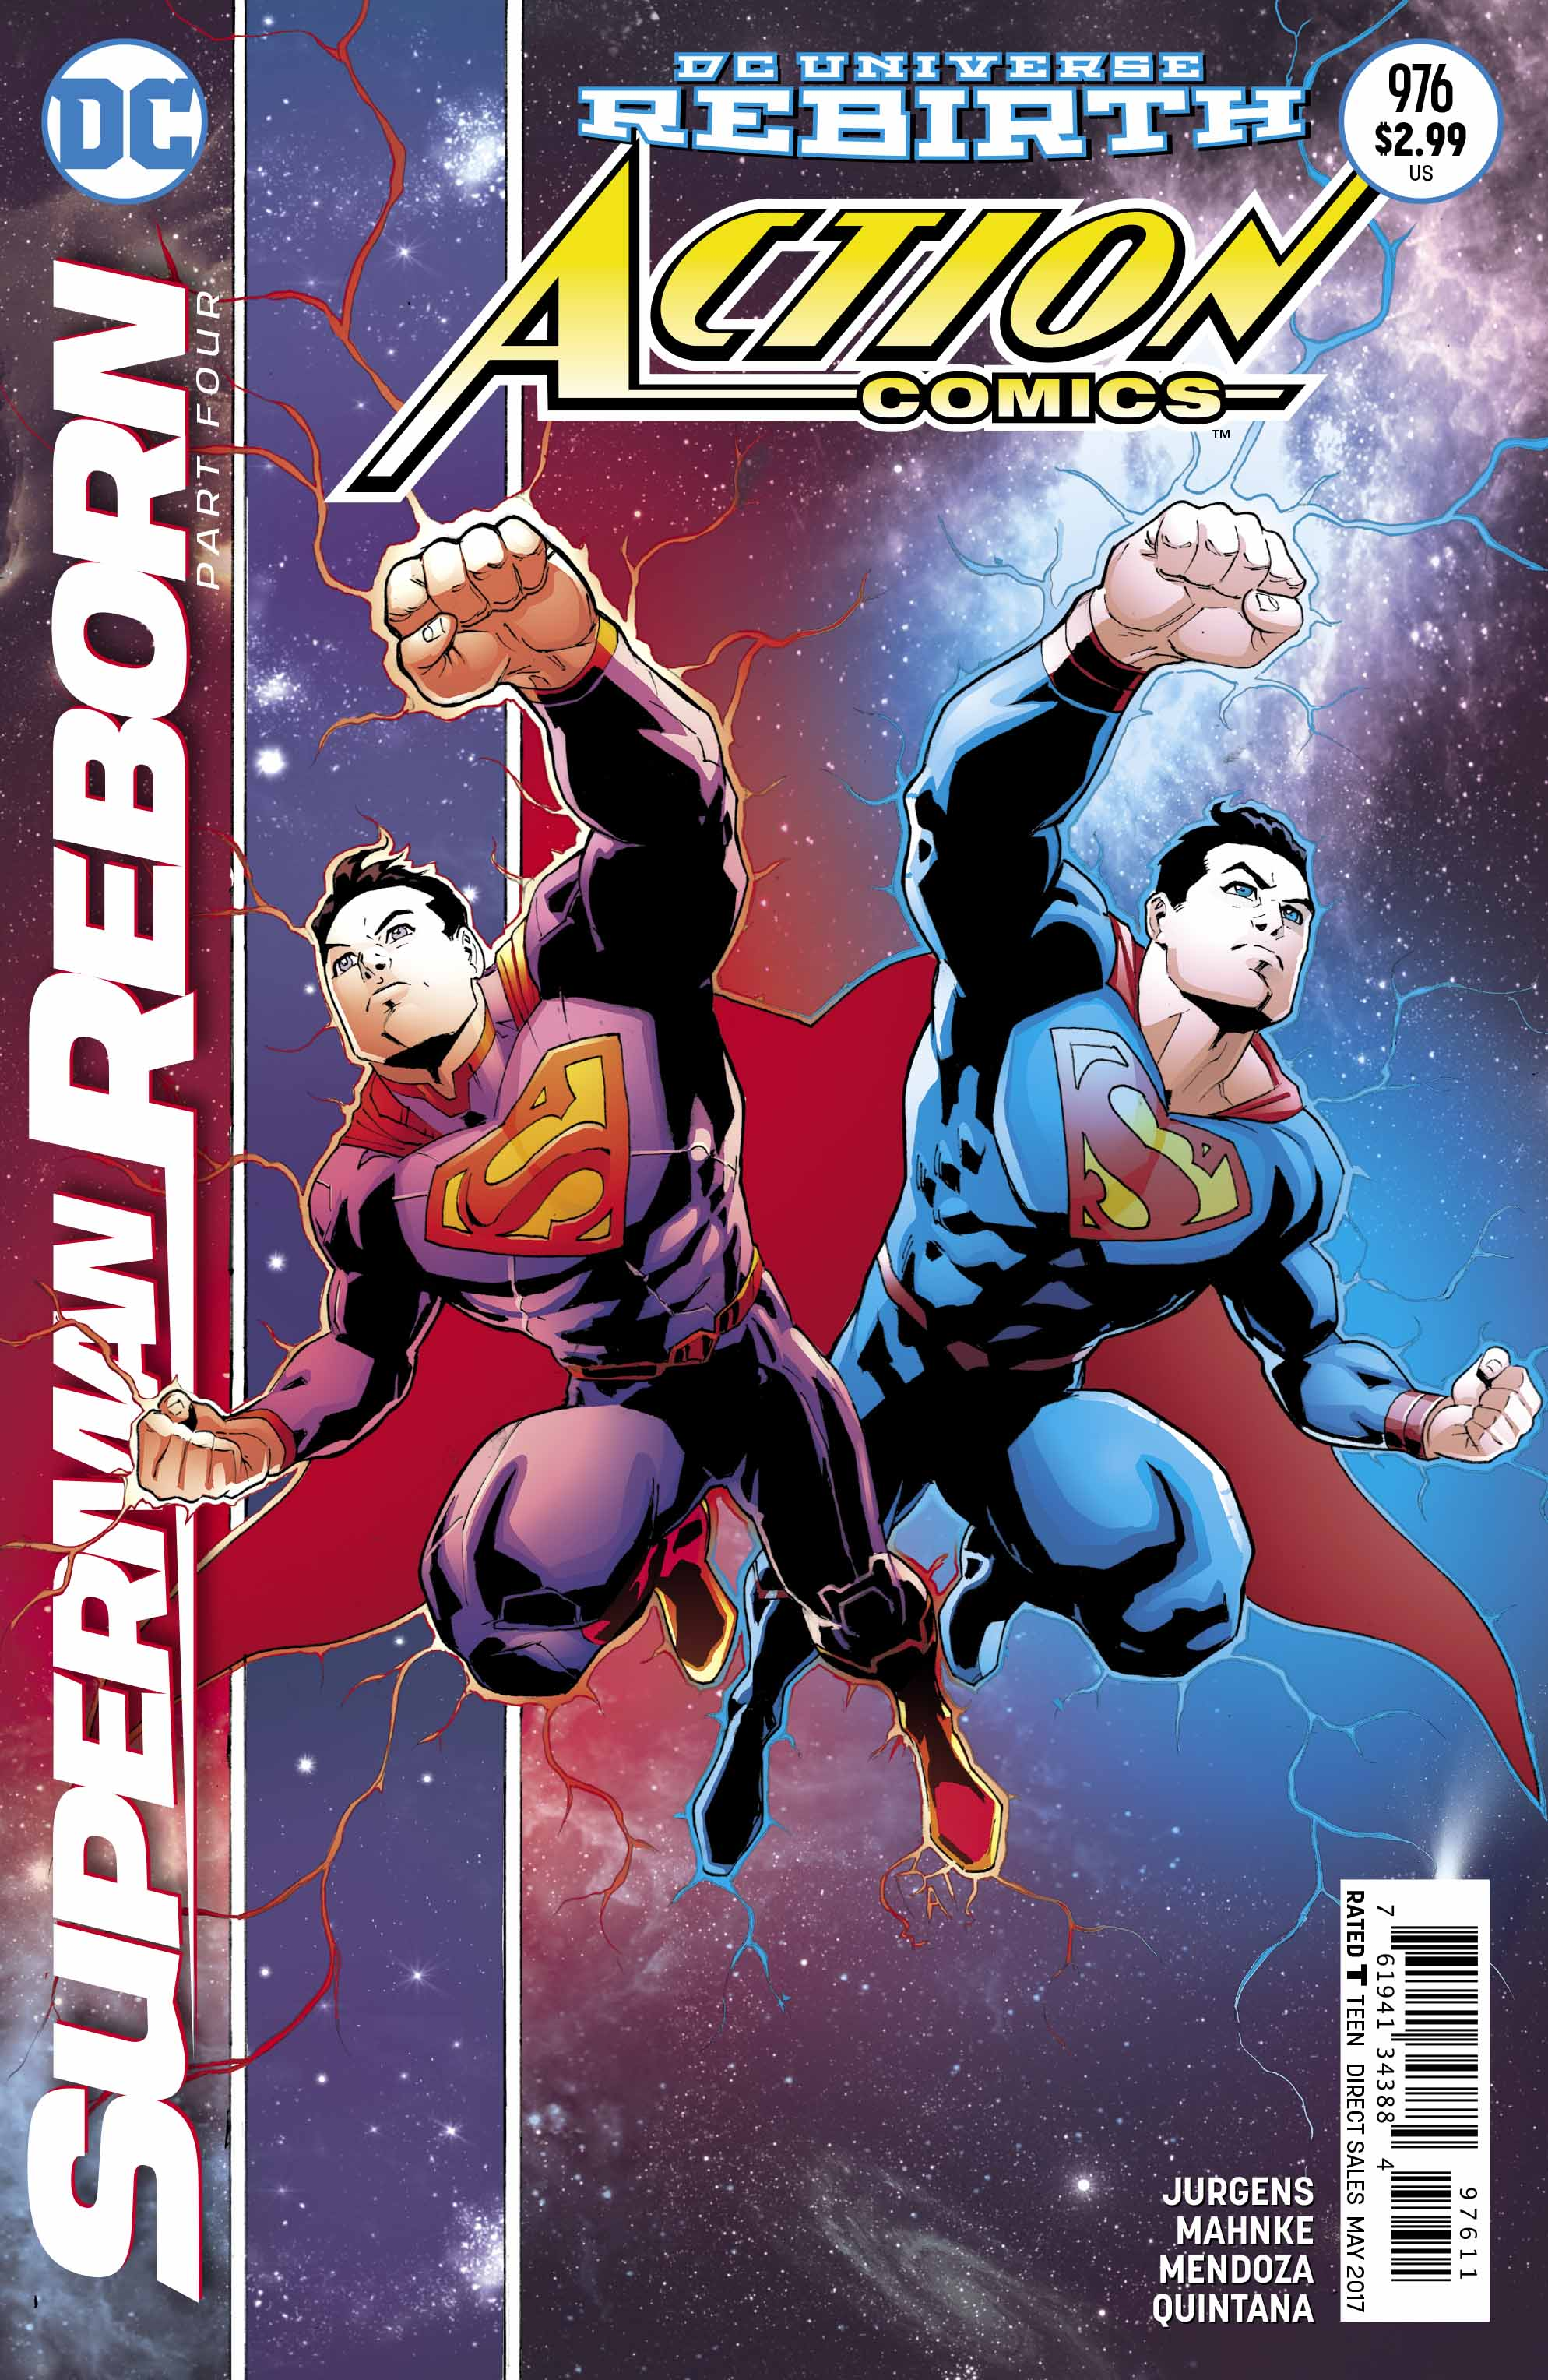 Action Comics #976 May Be The Most Important DC Book You'll Read This Month